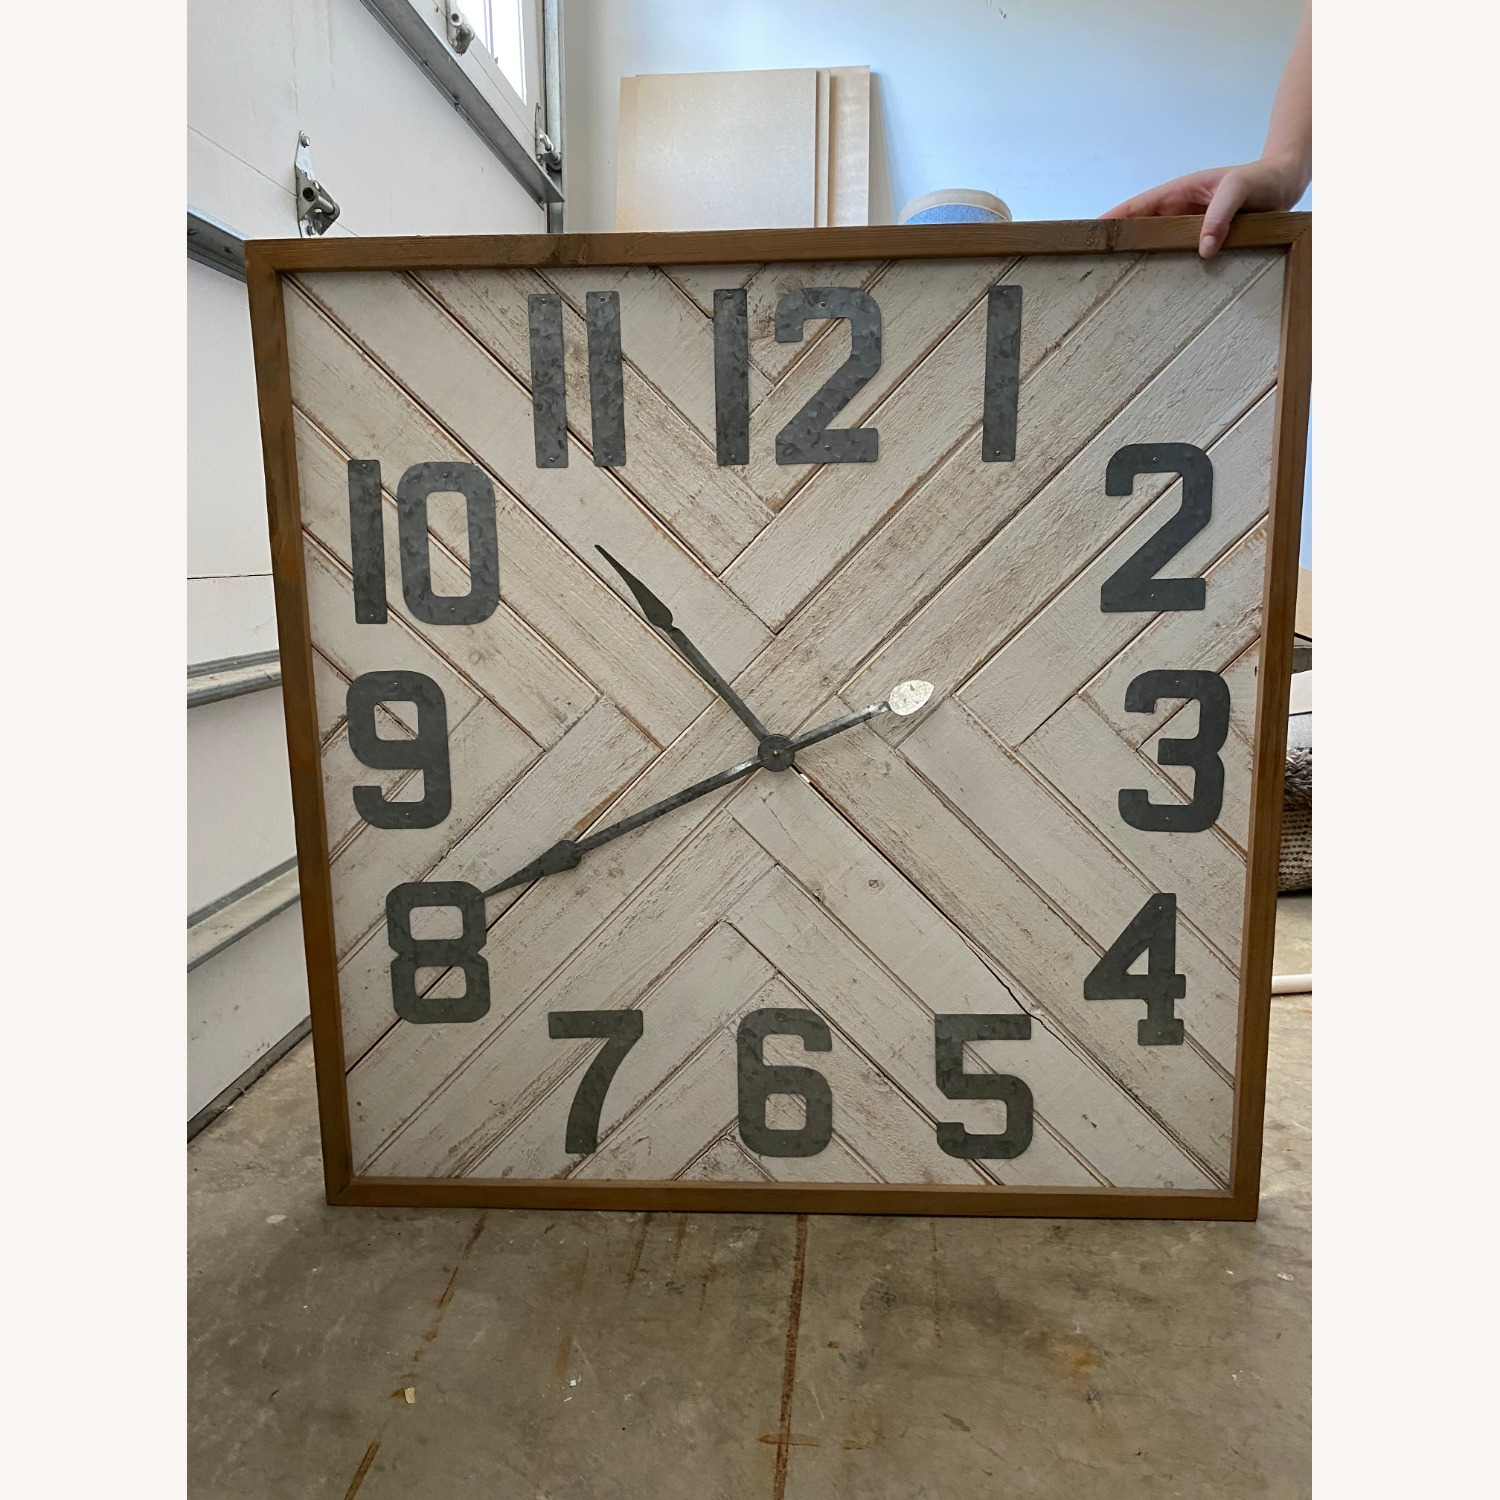 Working Clock Wall Art - image-1